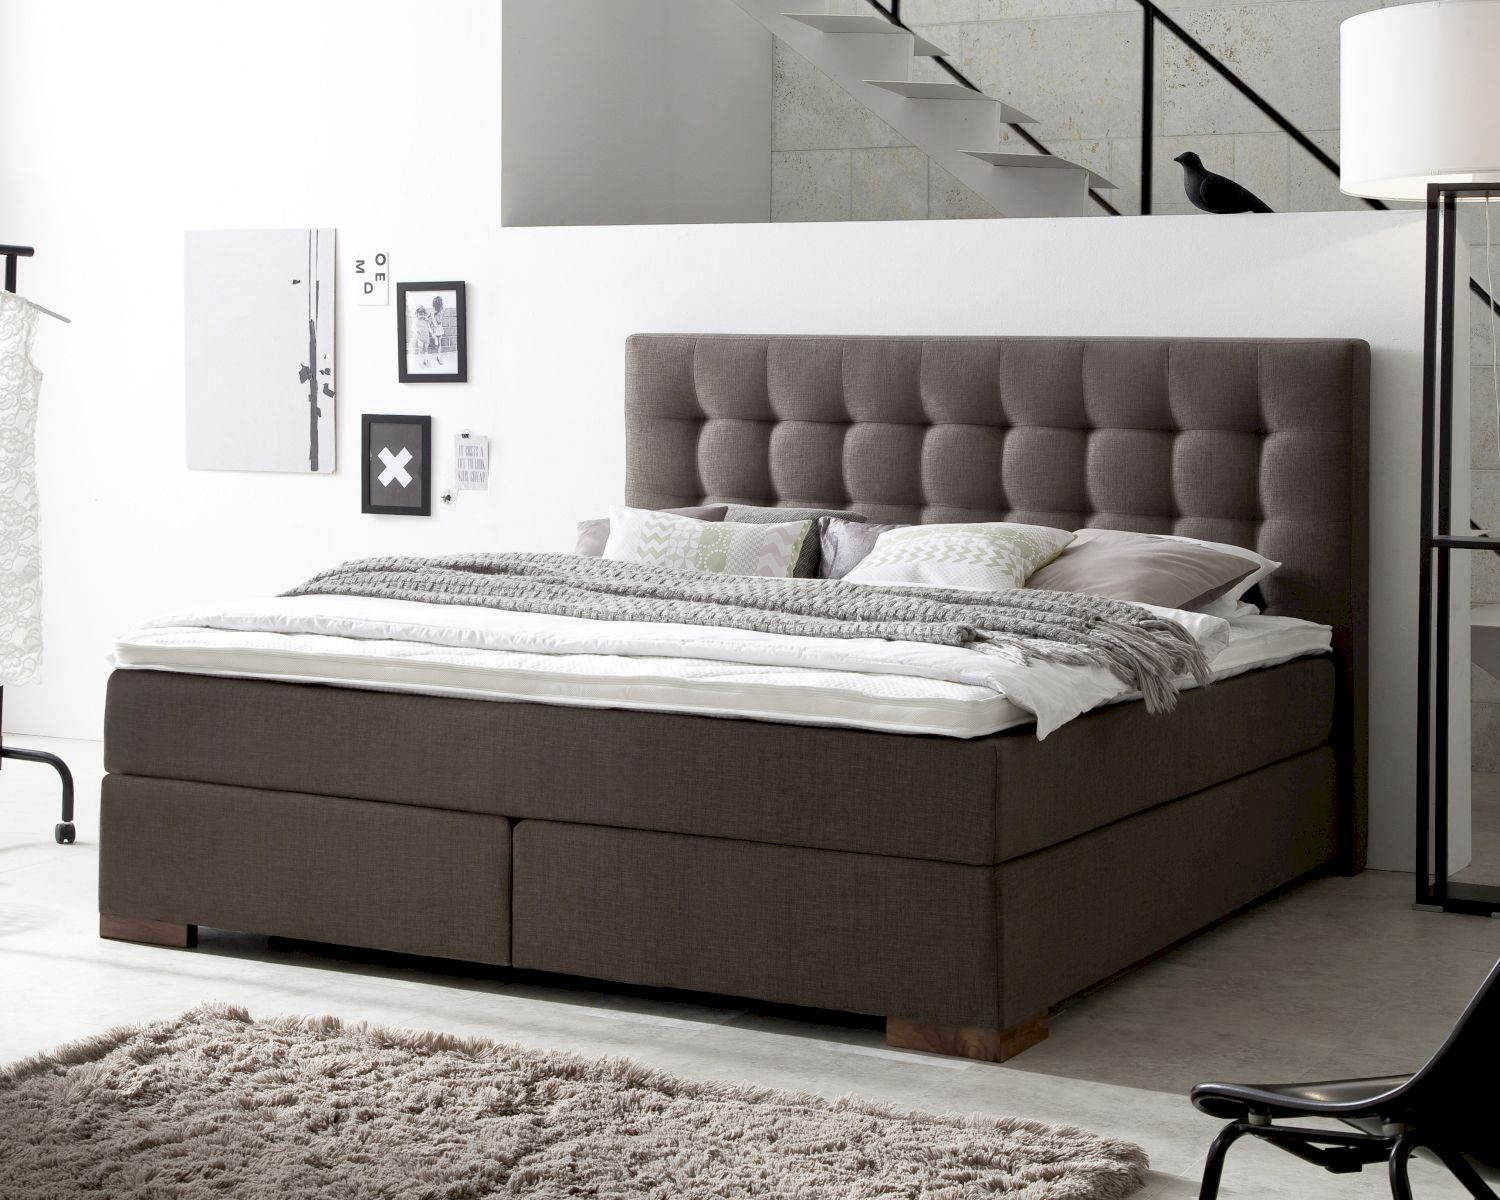 bett meise top with bett meise cool previous next with bett meise simple meisembel. Black Bedroom Furniture Sets. Home Design Ideas